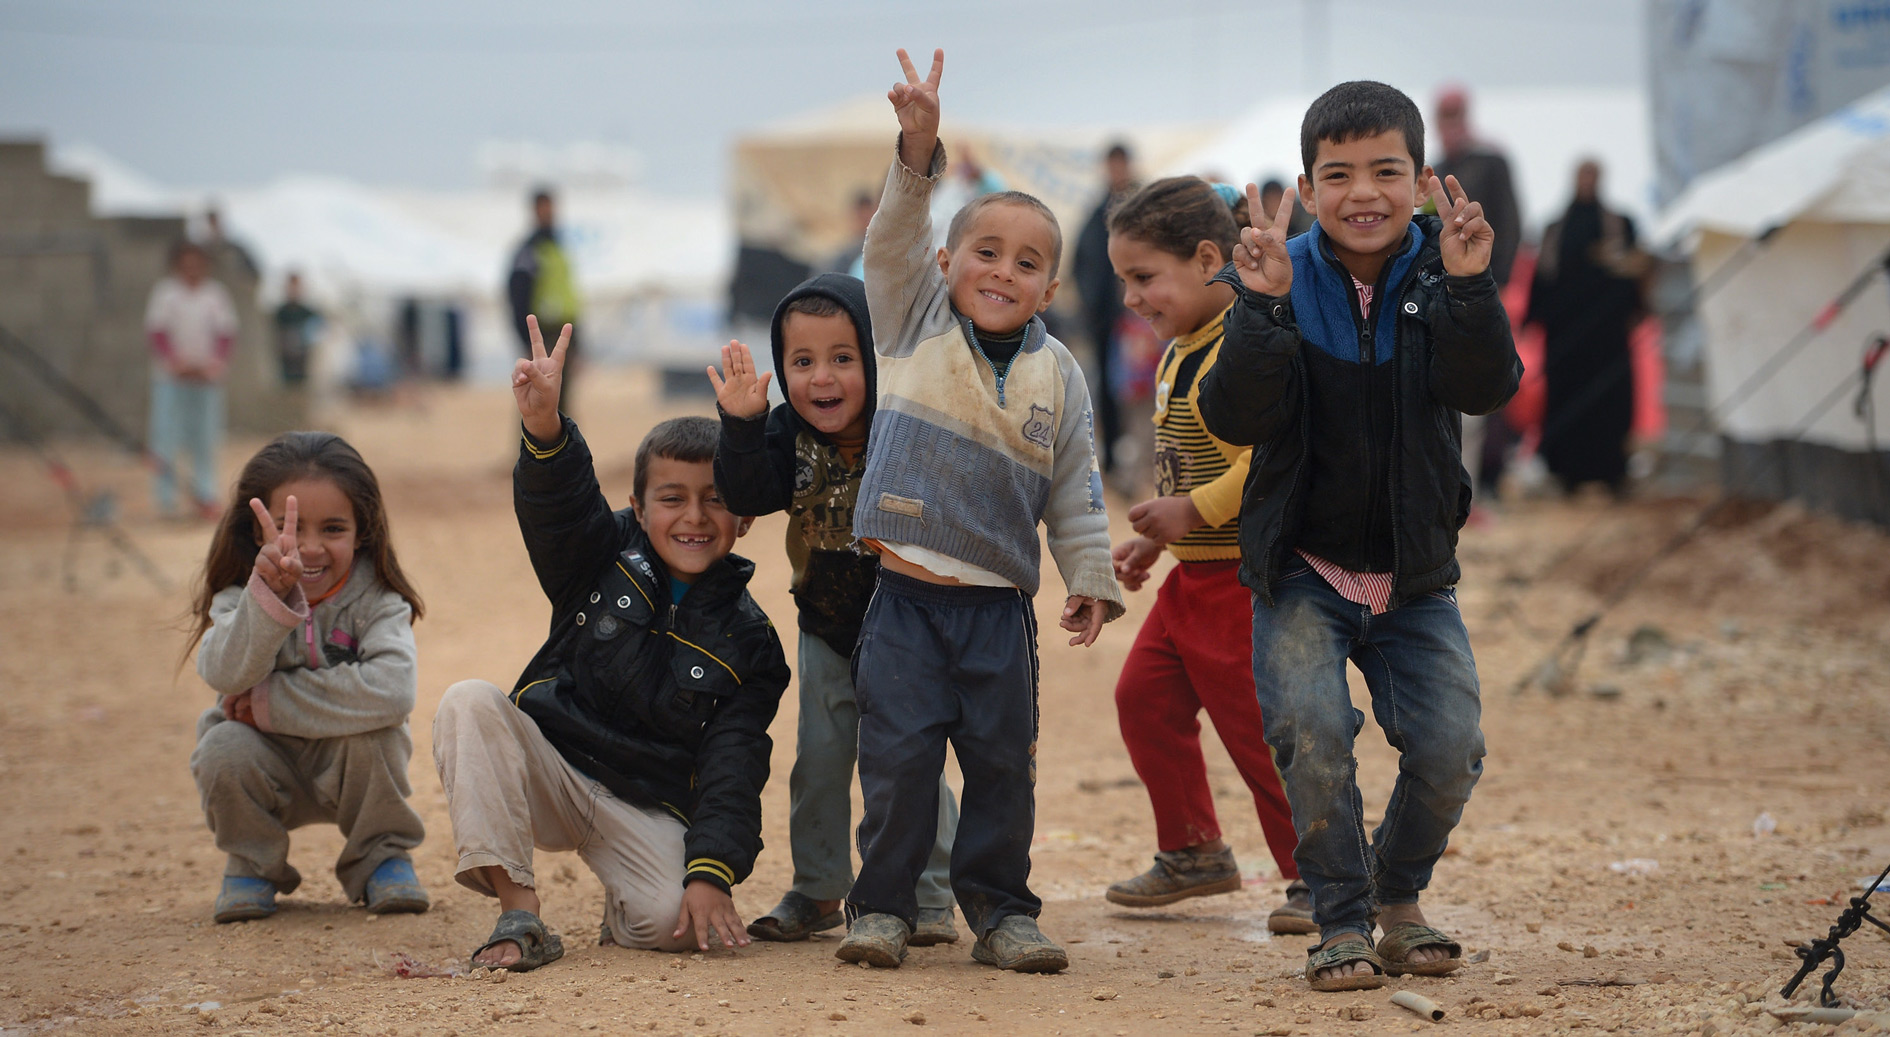 Children pose for a picture in the Za'atari refugee camp in Jordan.